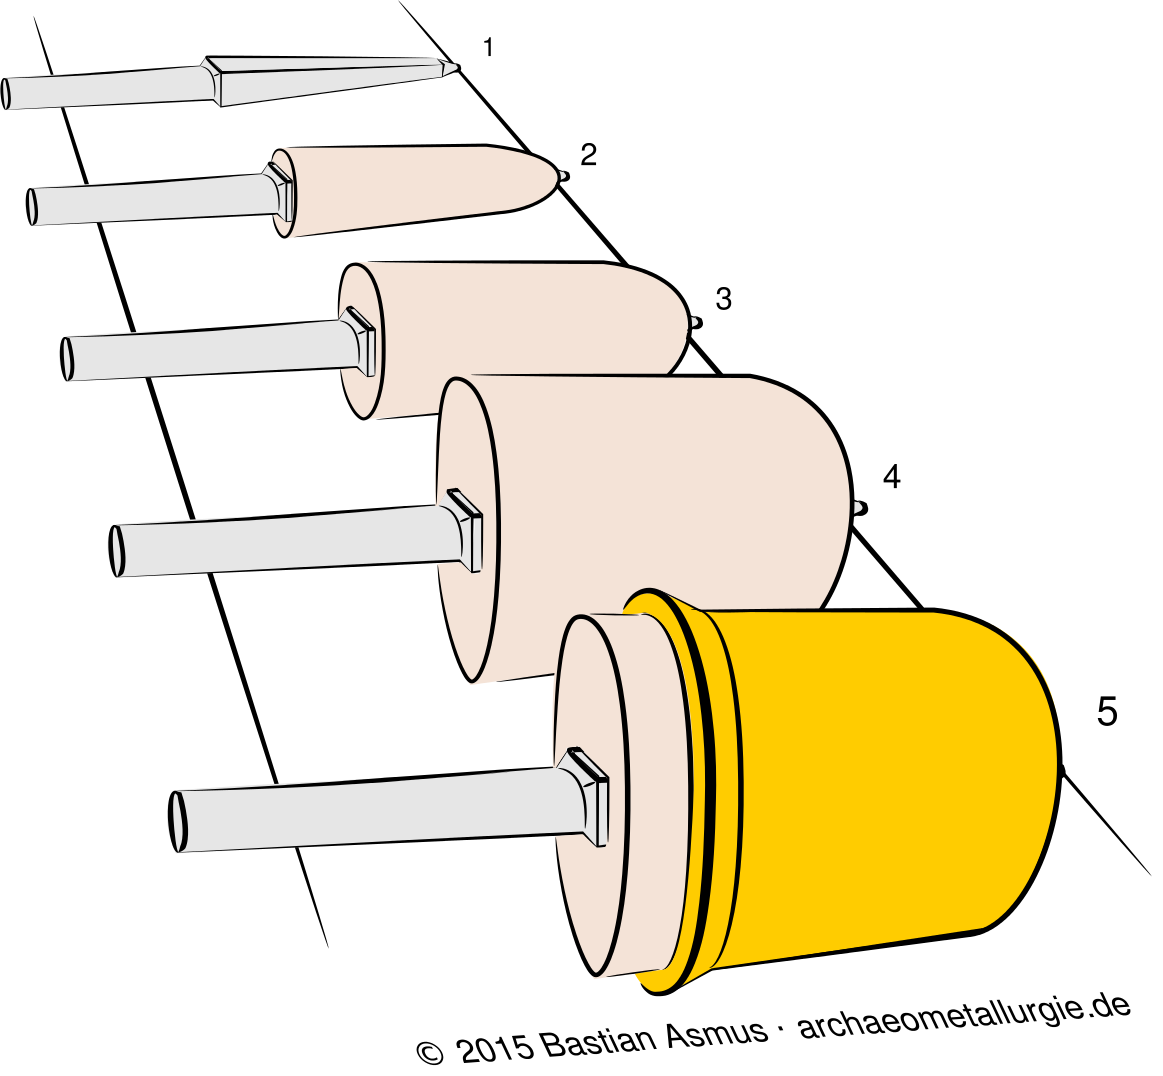 Bell-founding: Schematic of the bell's core